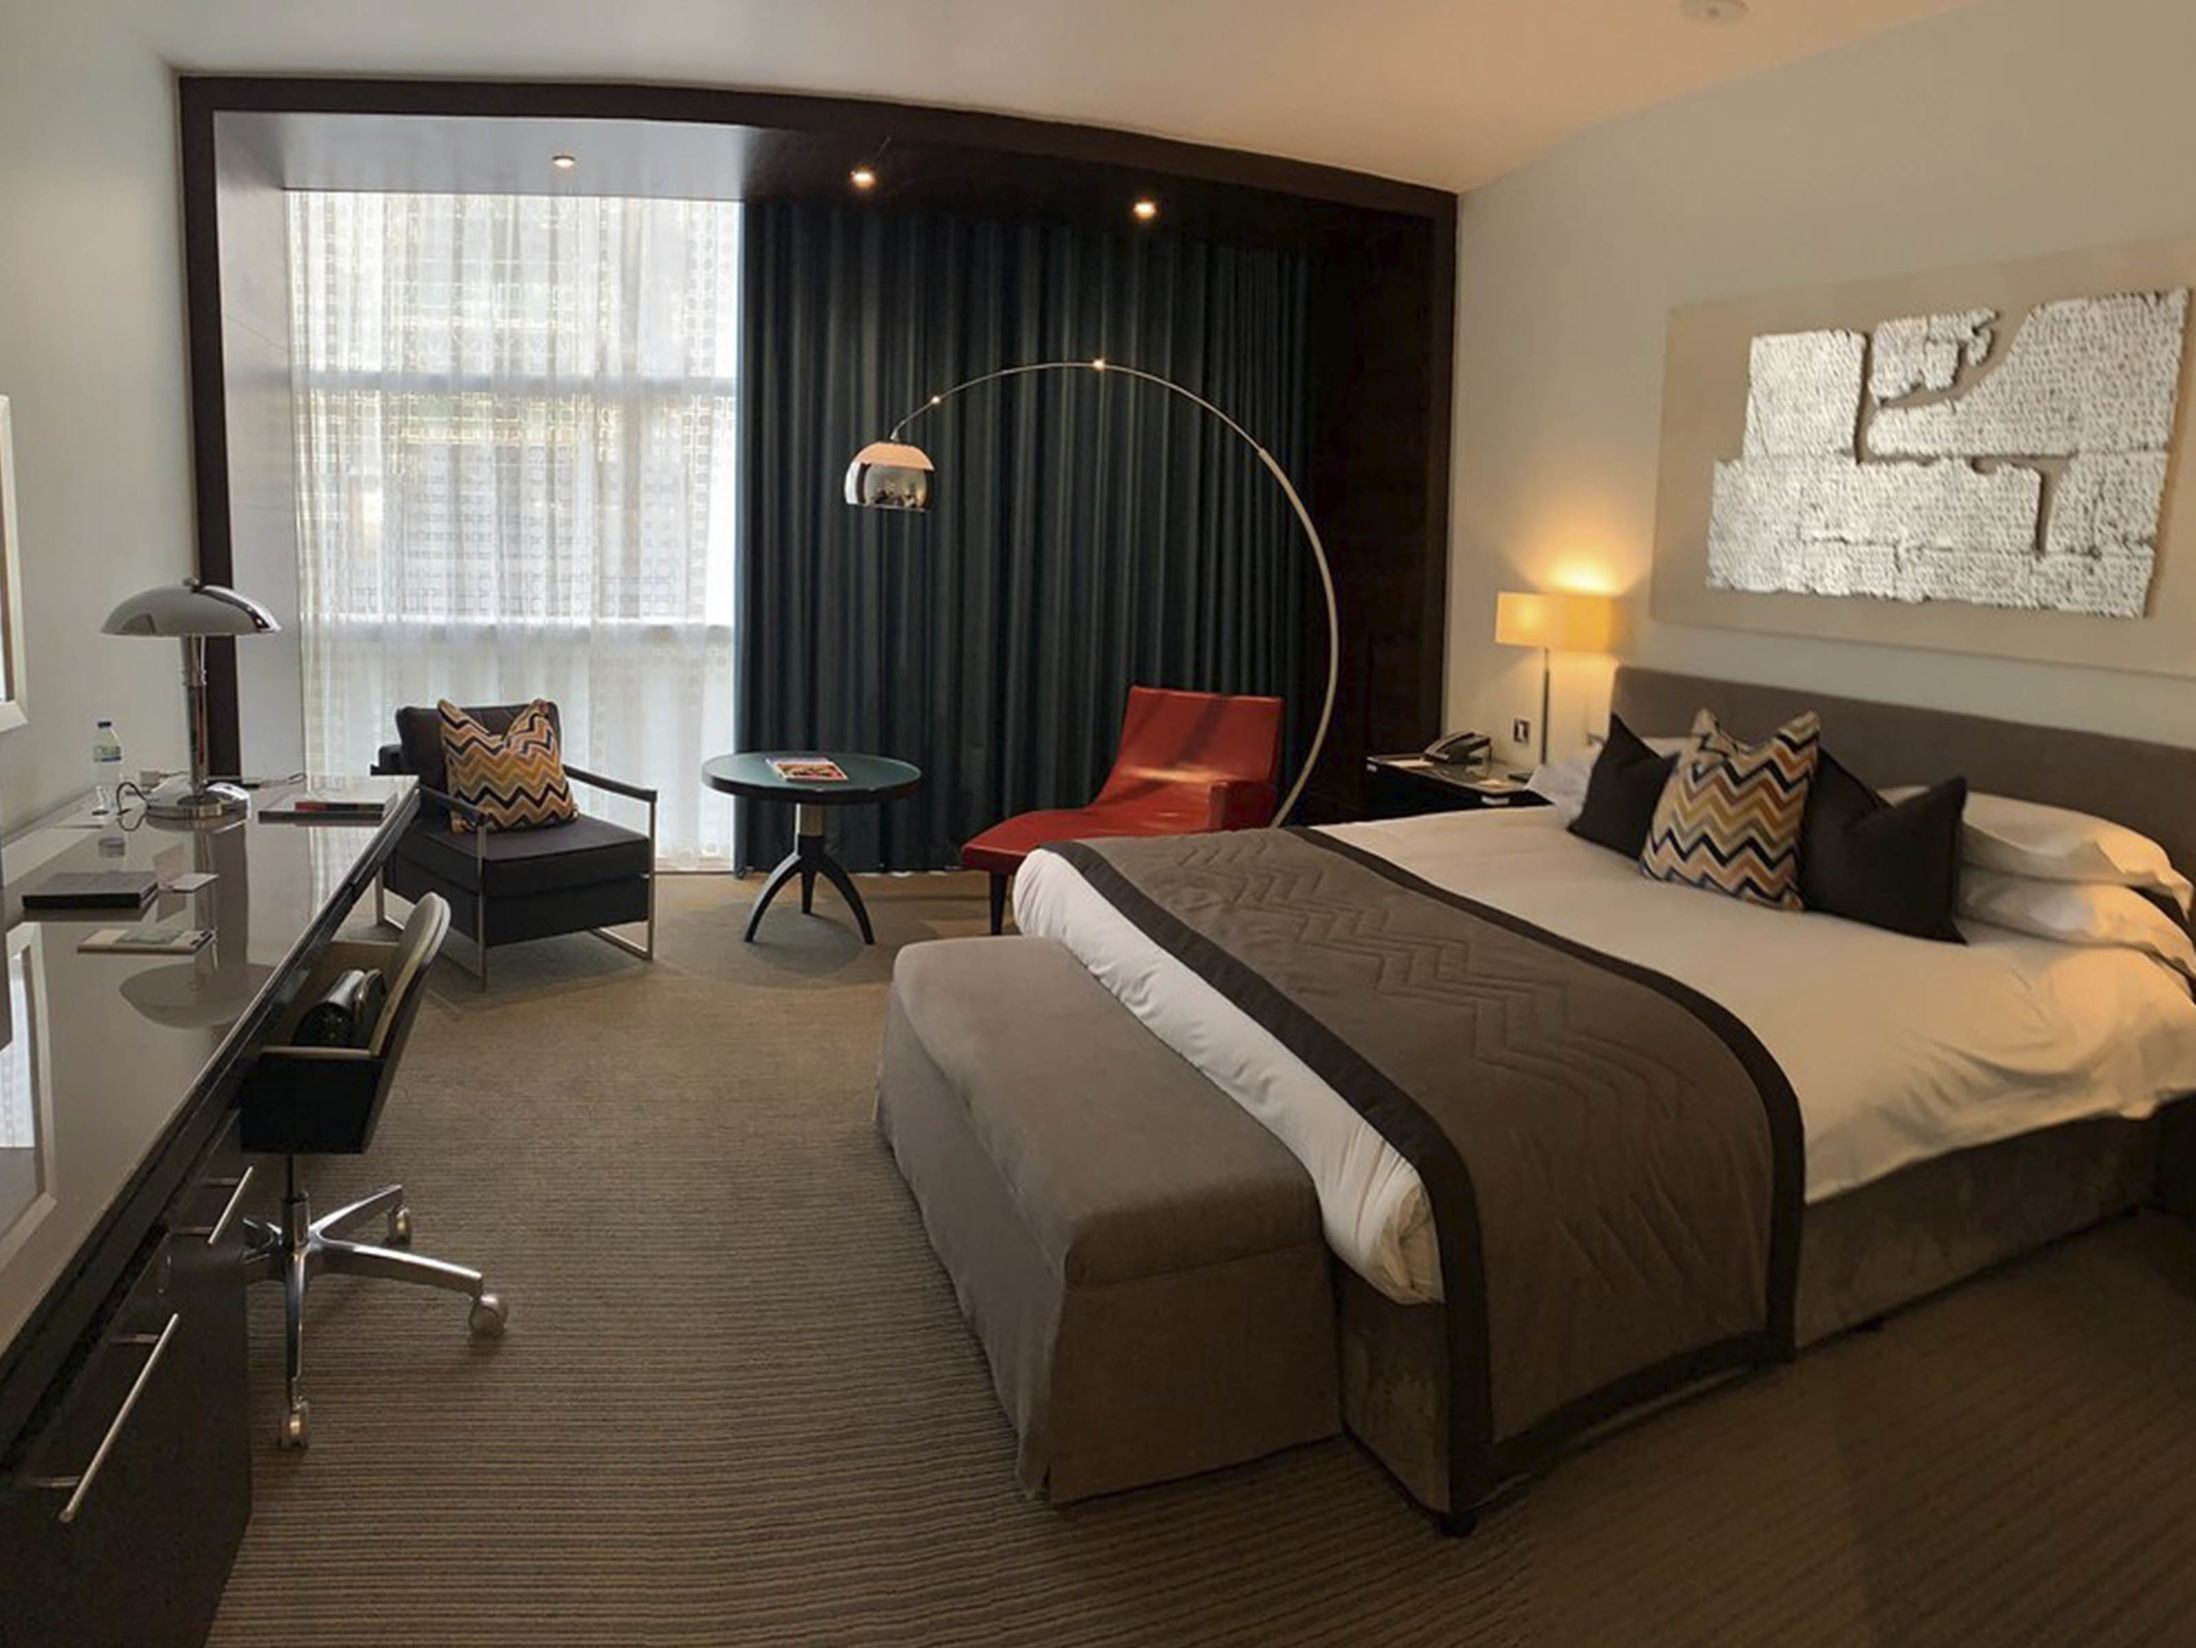 The Lowry Hotel - Best Hotels in Manchester